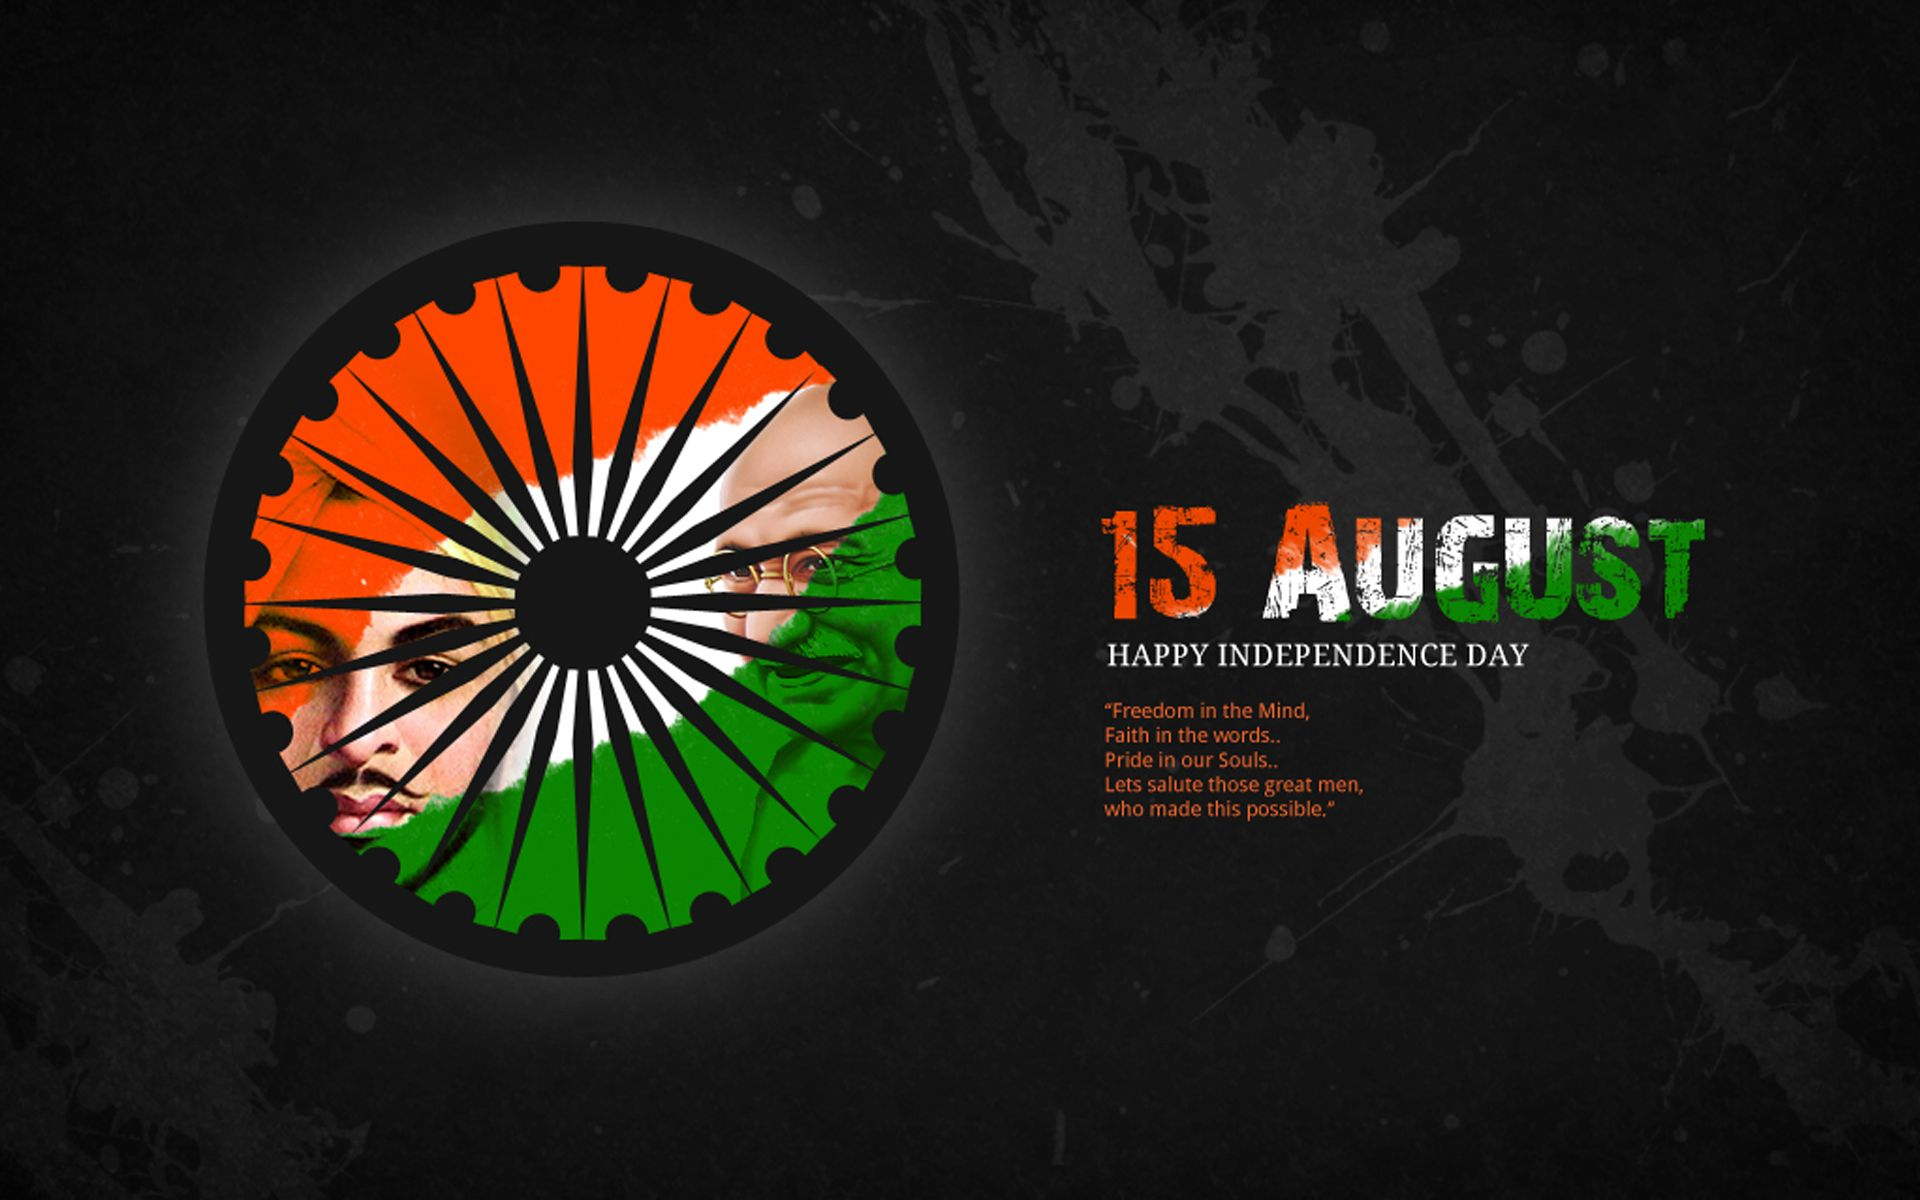 Attirant This Independence Day 2015 Should Be The Most Rapturous One For All. Happy  Independence Day Latest SMS, Messages, Wishes, Quotes Free Wallpapers,